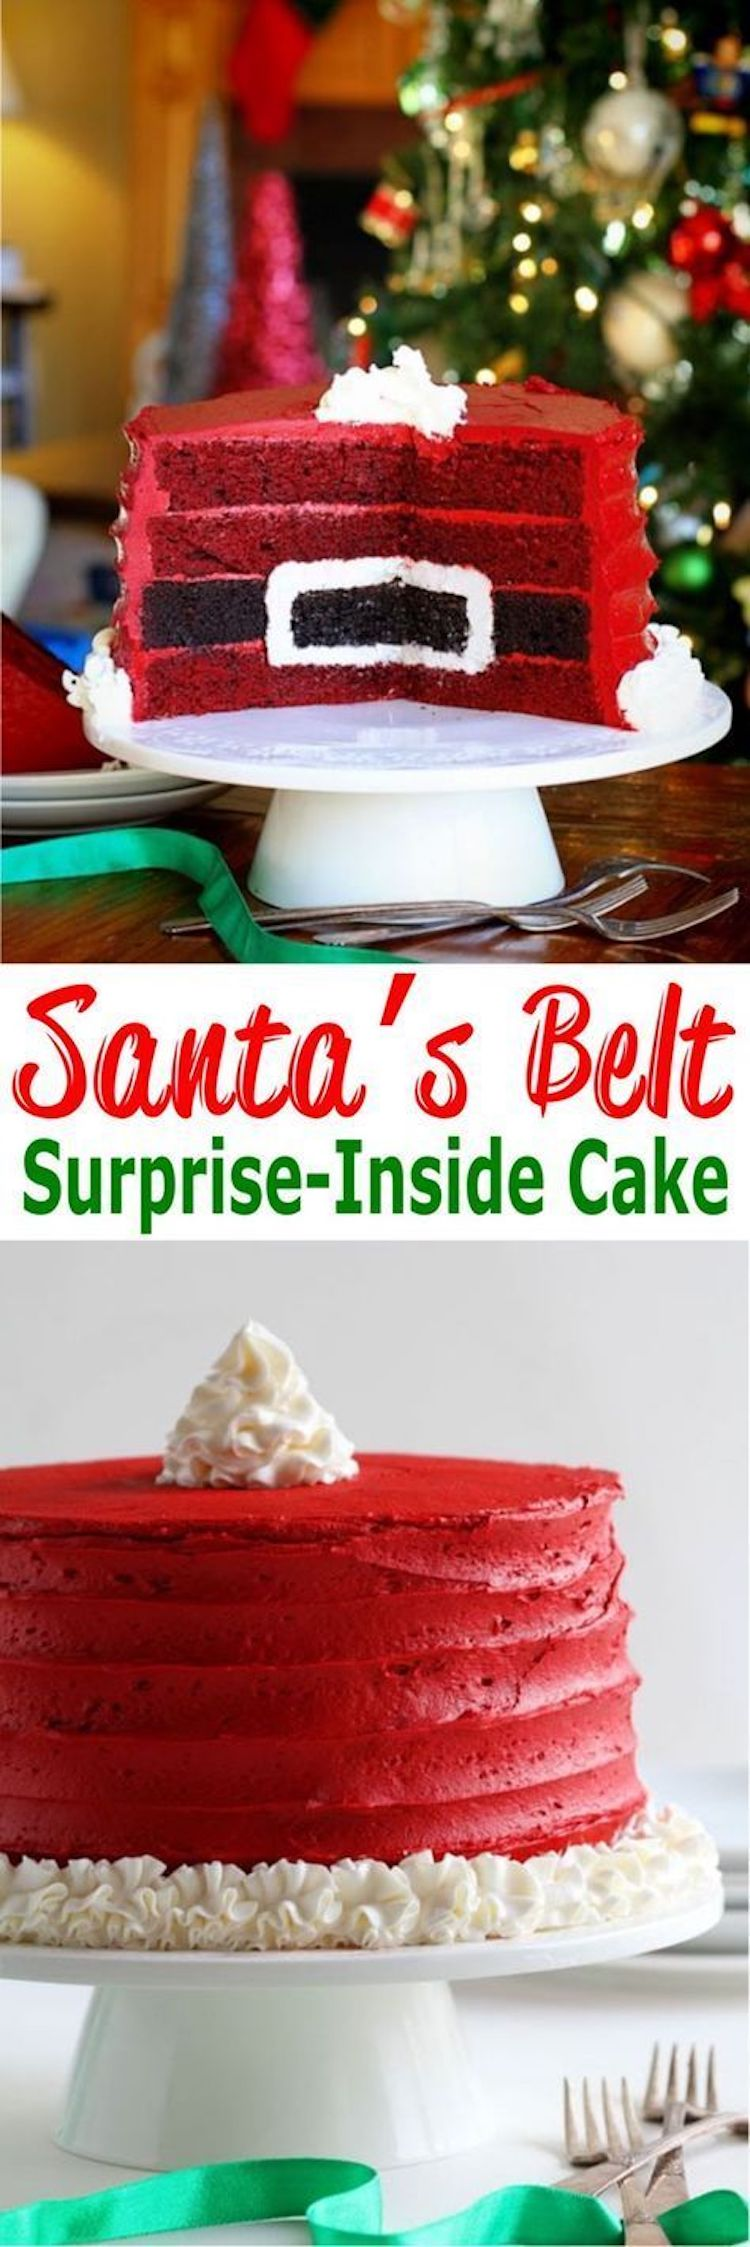 Santa's Belt Surprise-Inside Cake